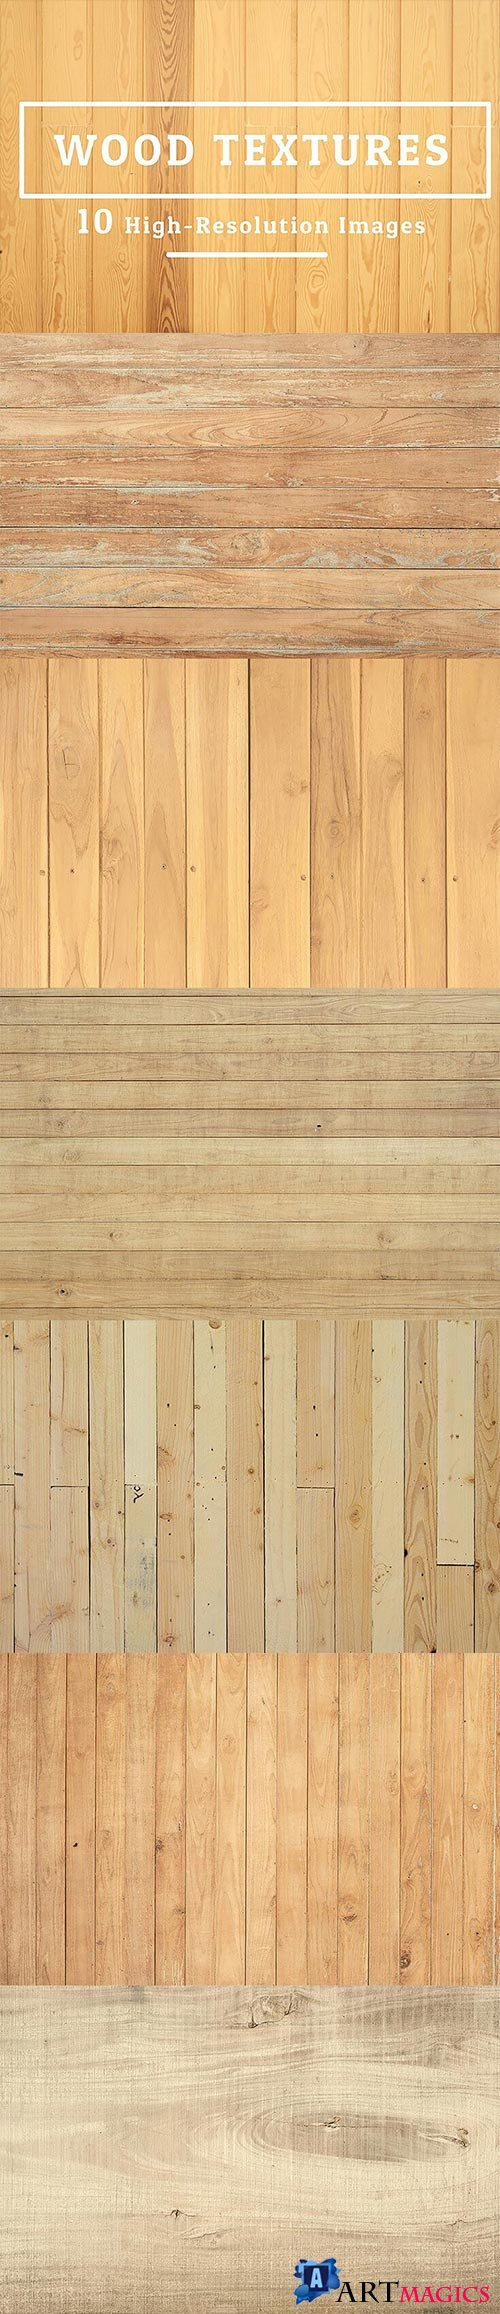 10 Wood Texture Background